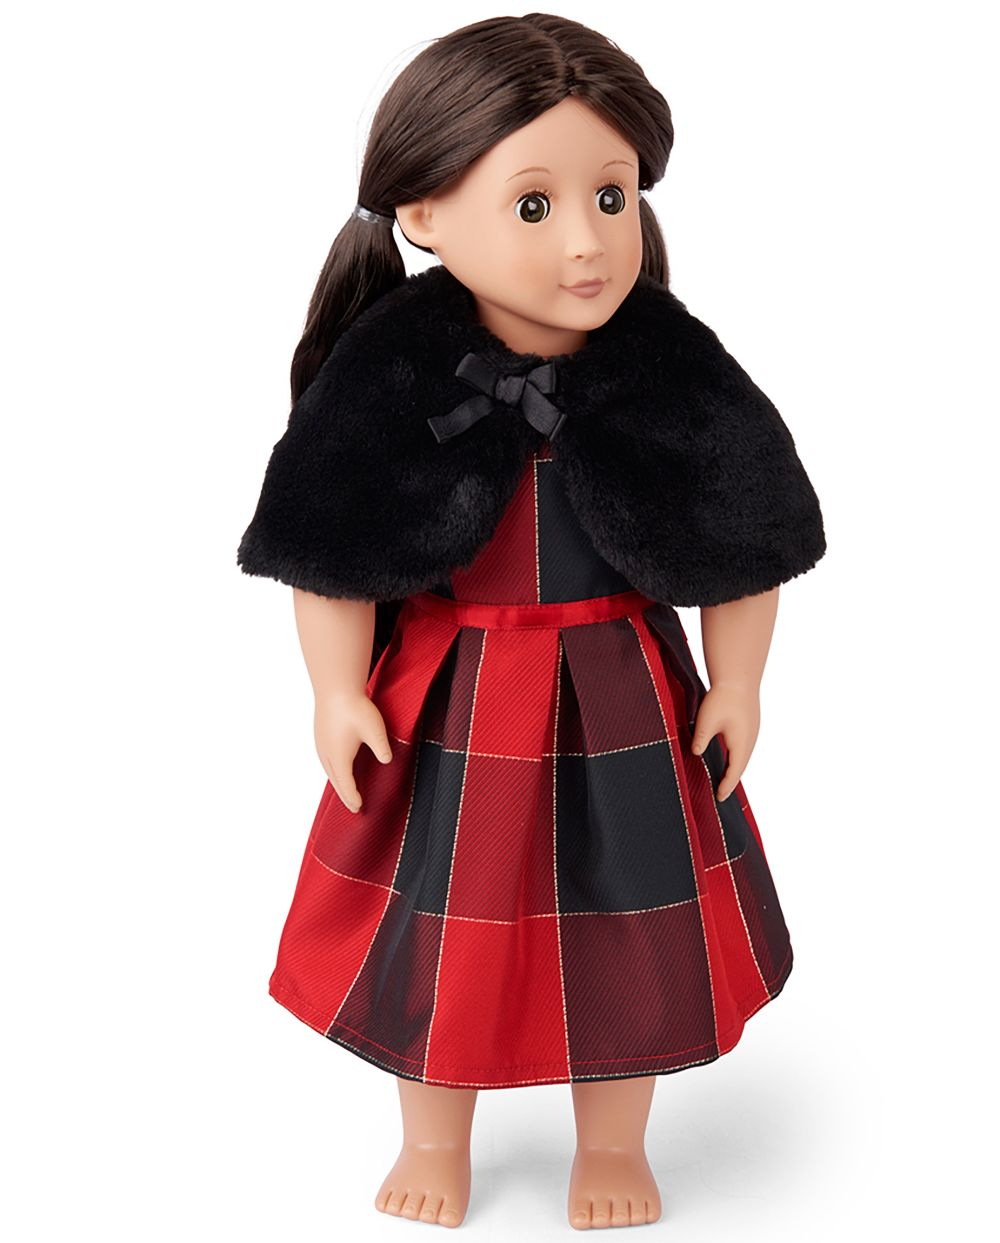 Doll Mommy And Me Glitter Buffalo Plaid Matching Pleated Dress And Faux Fur Cape Set